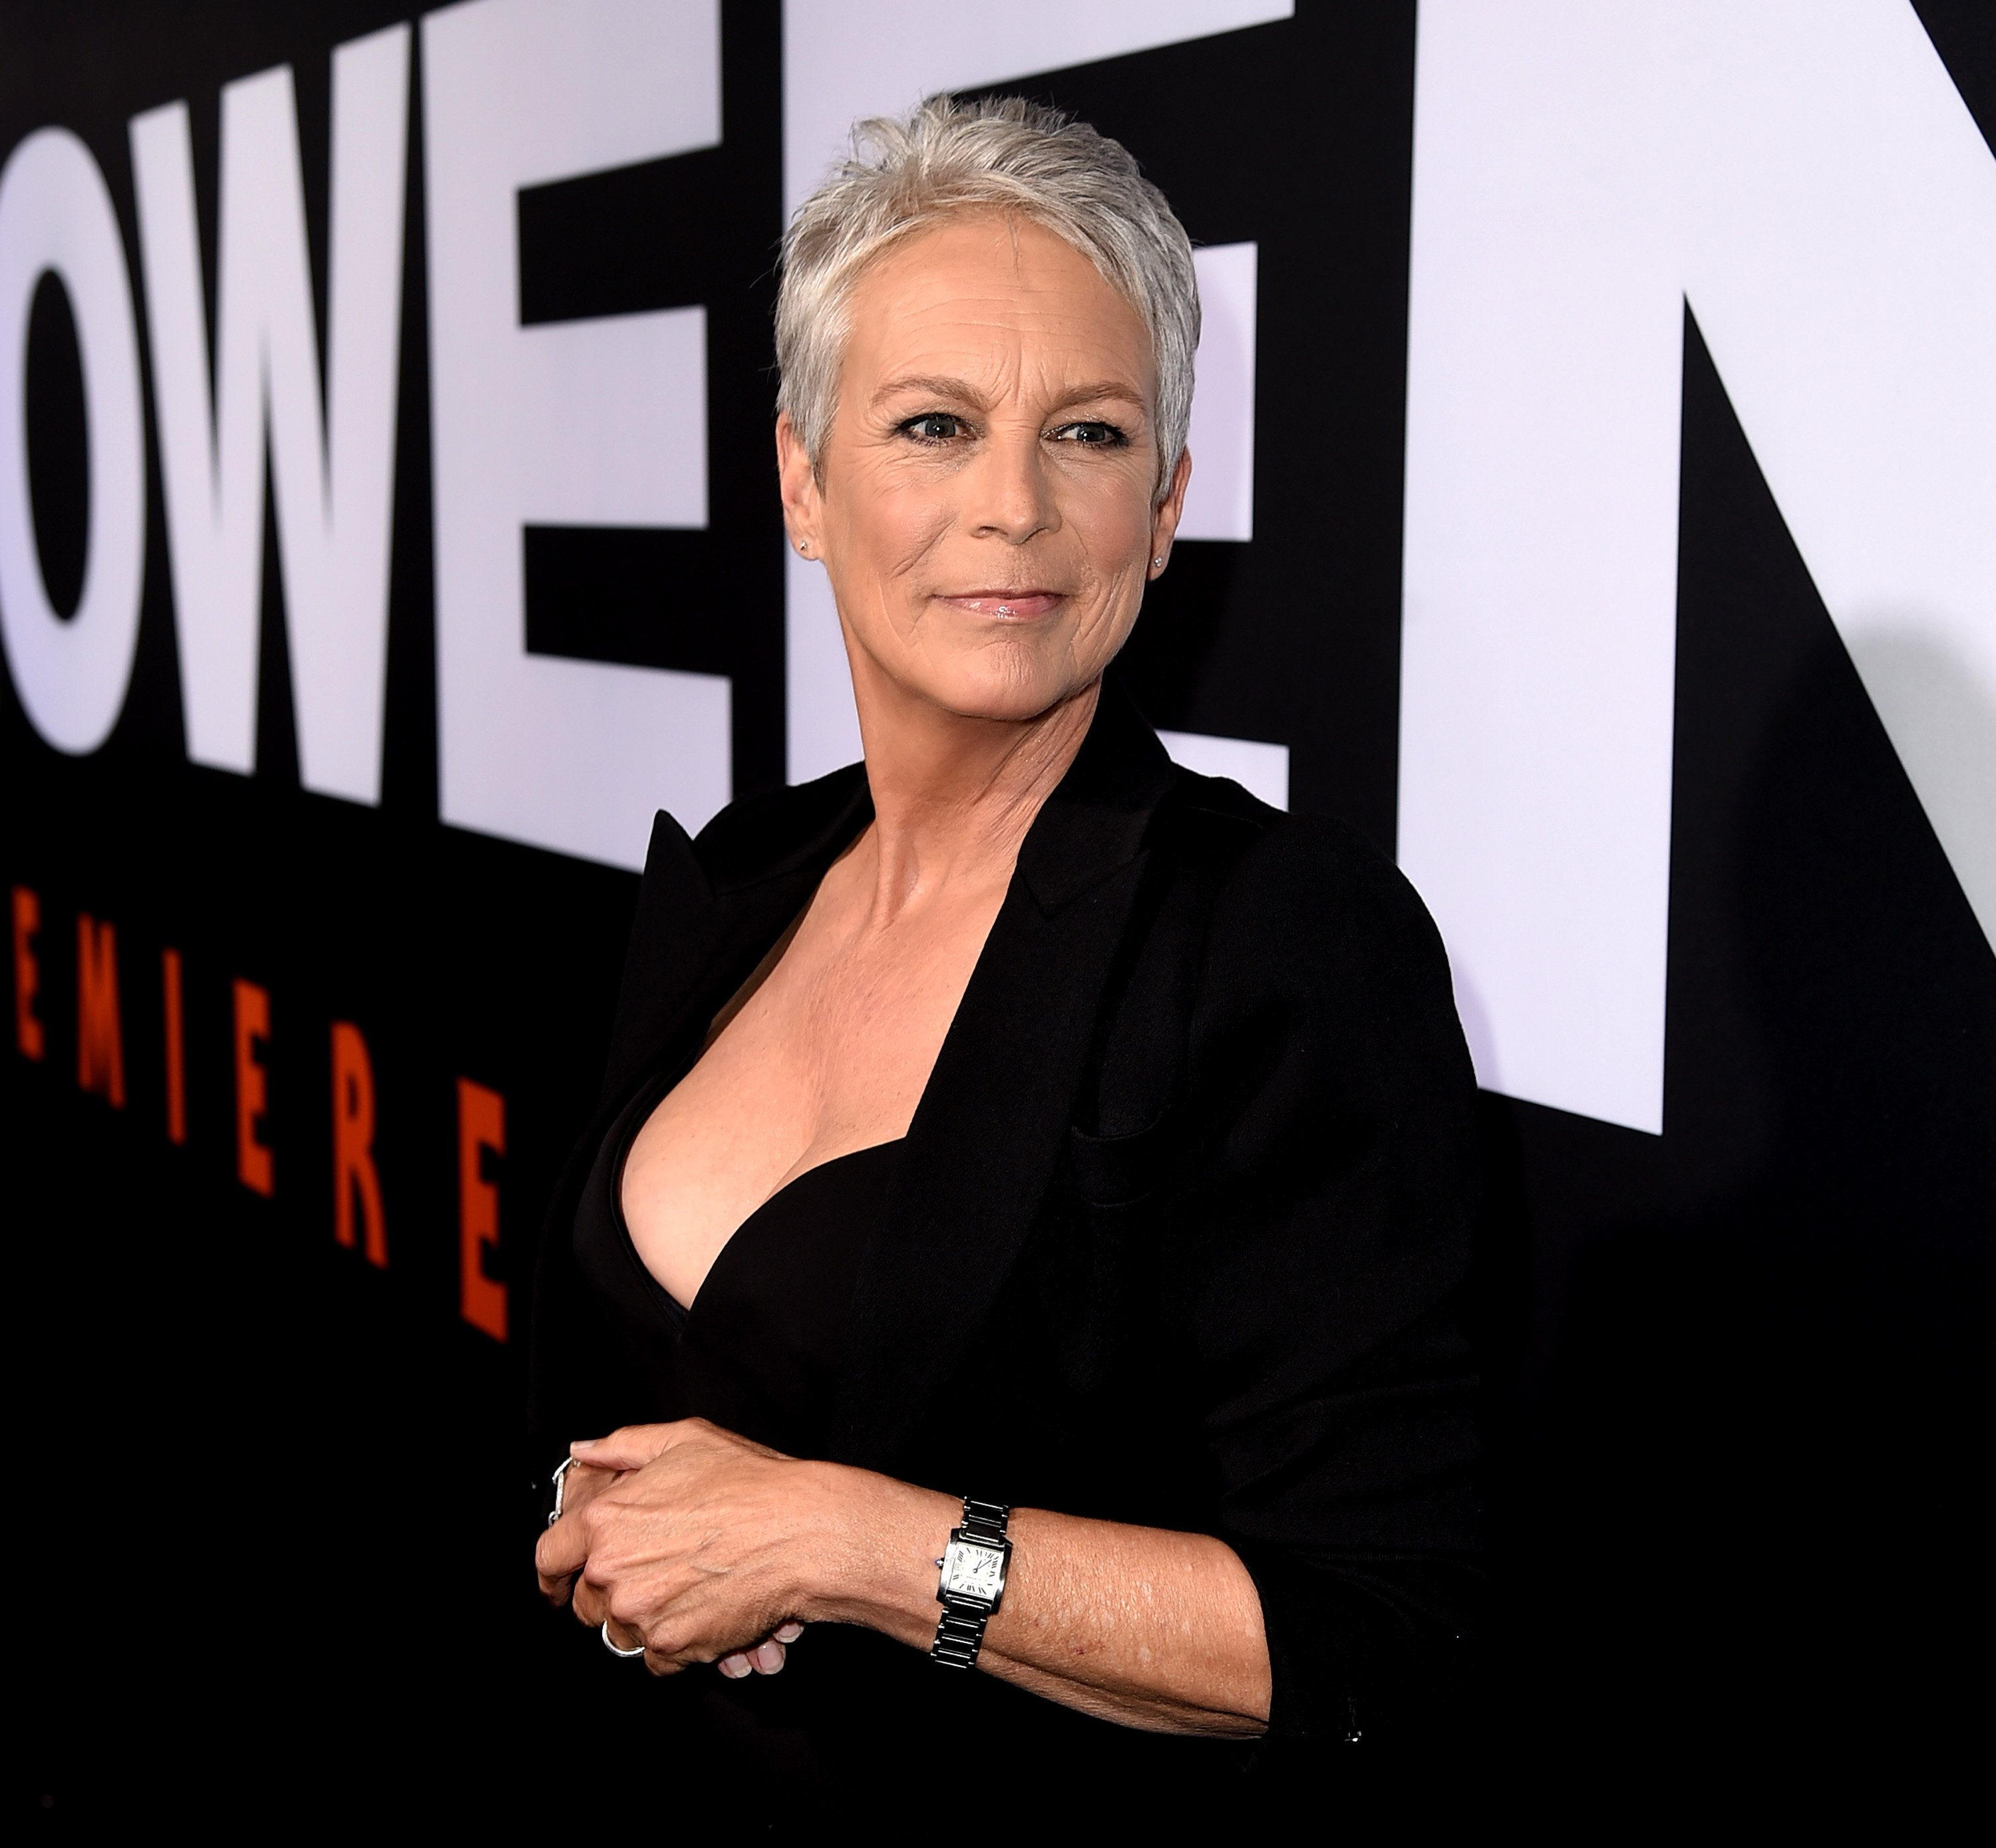 """Jamie Lee Curtis attends the premiere of """"Halloween"""" in Los Angeles, California on October 17, 2018 